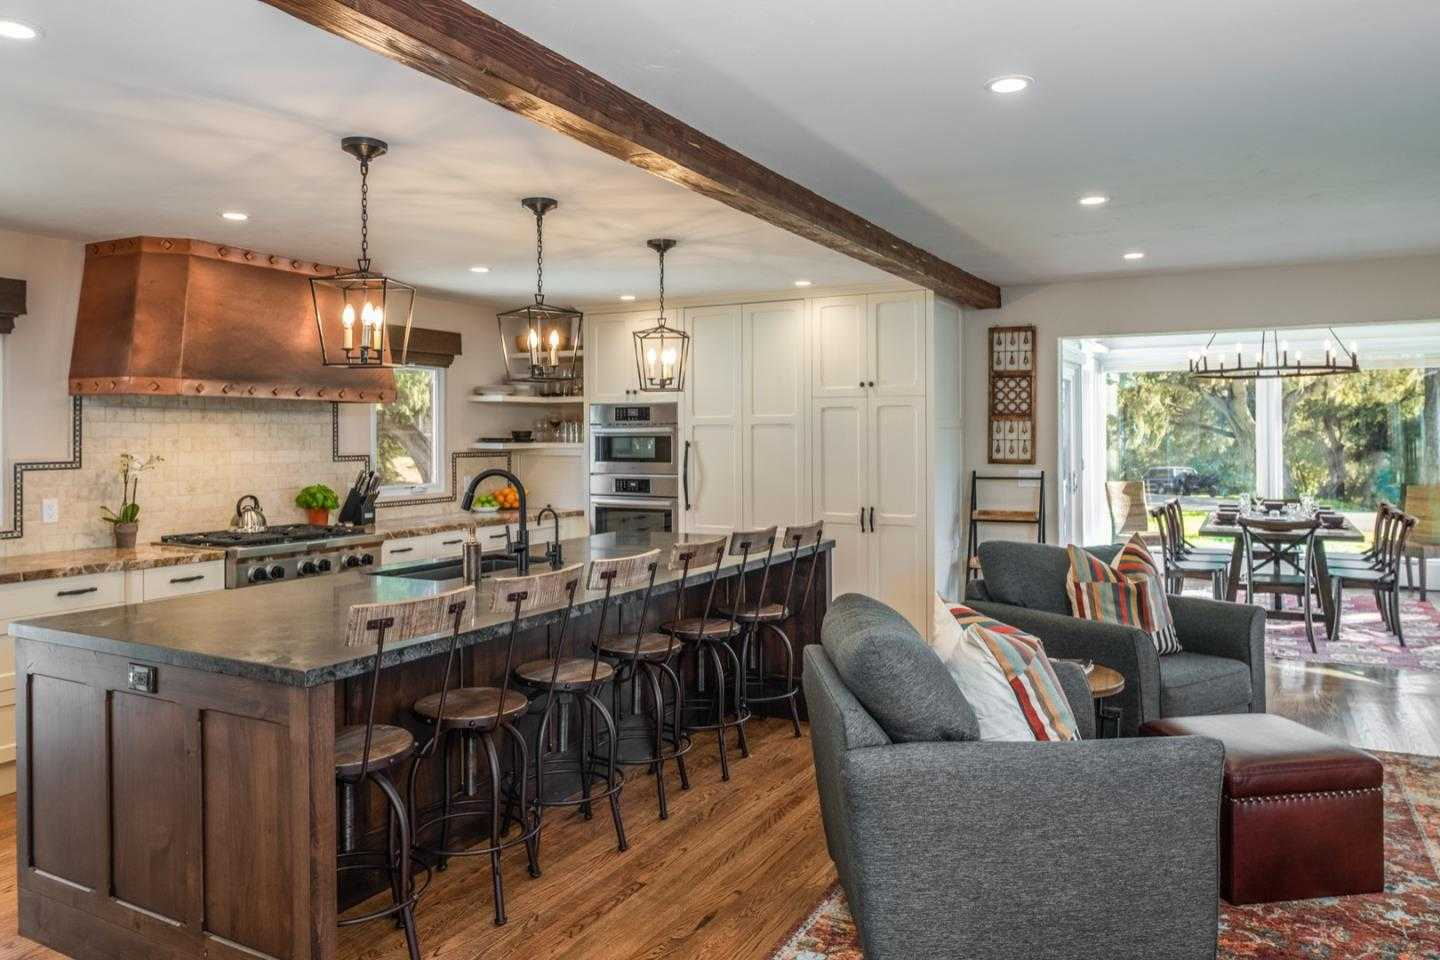 $1,750,000 - 3Br/2Ba -  for Sale in Pebble Beach